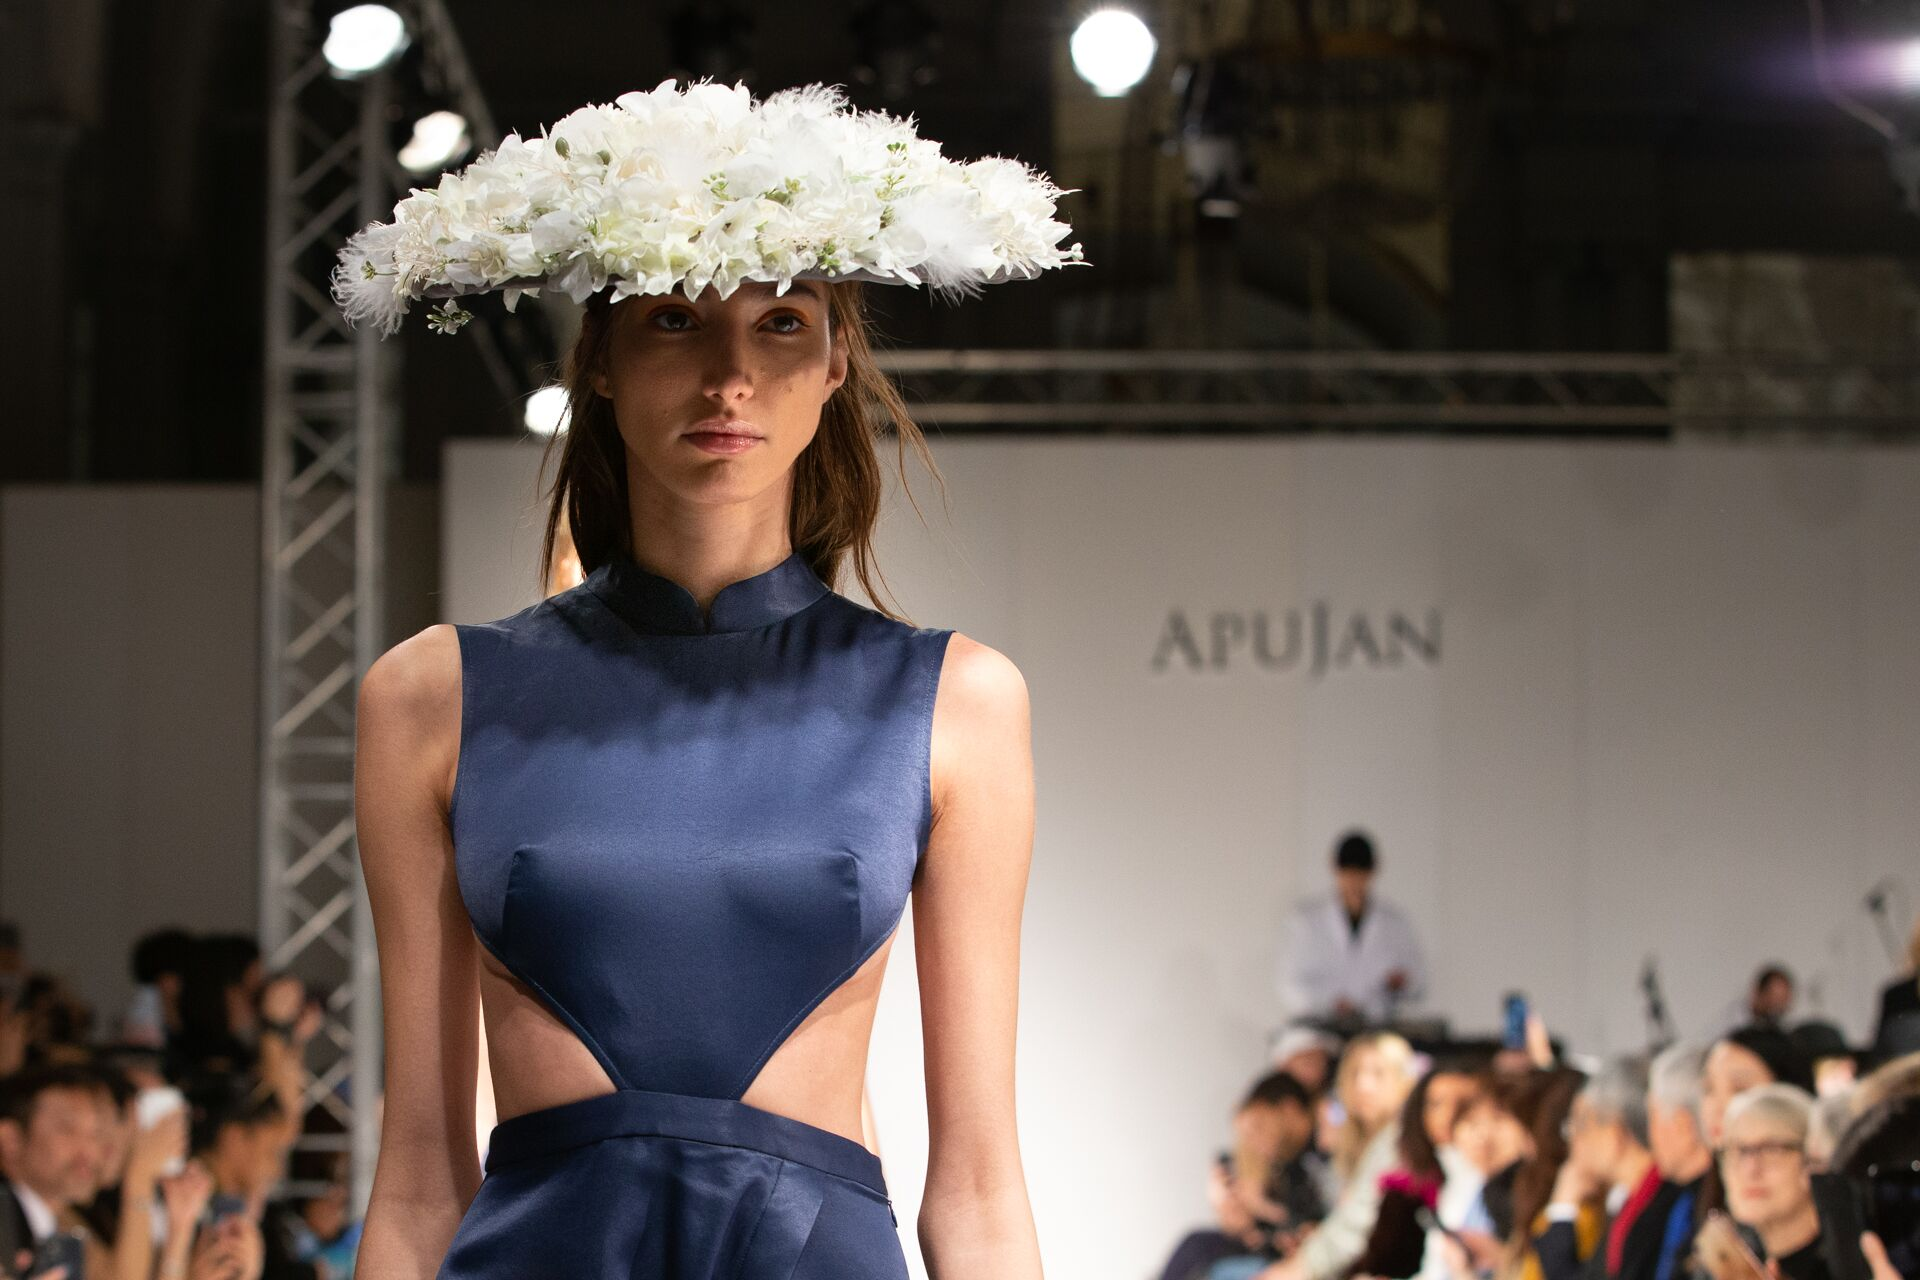 Apujan aw20 show during london fashion week